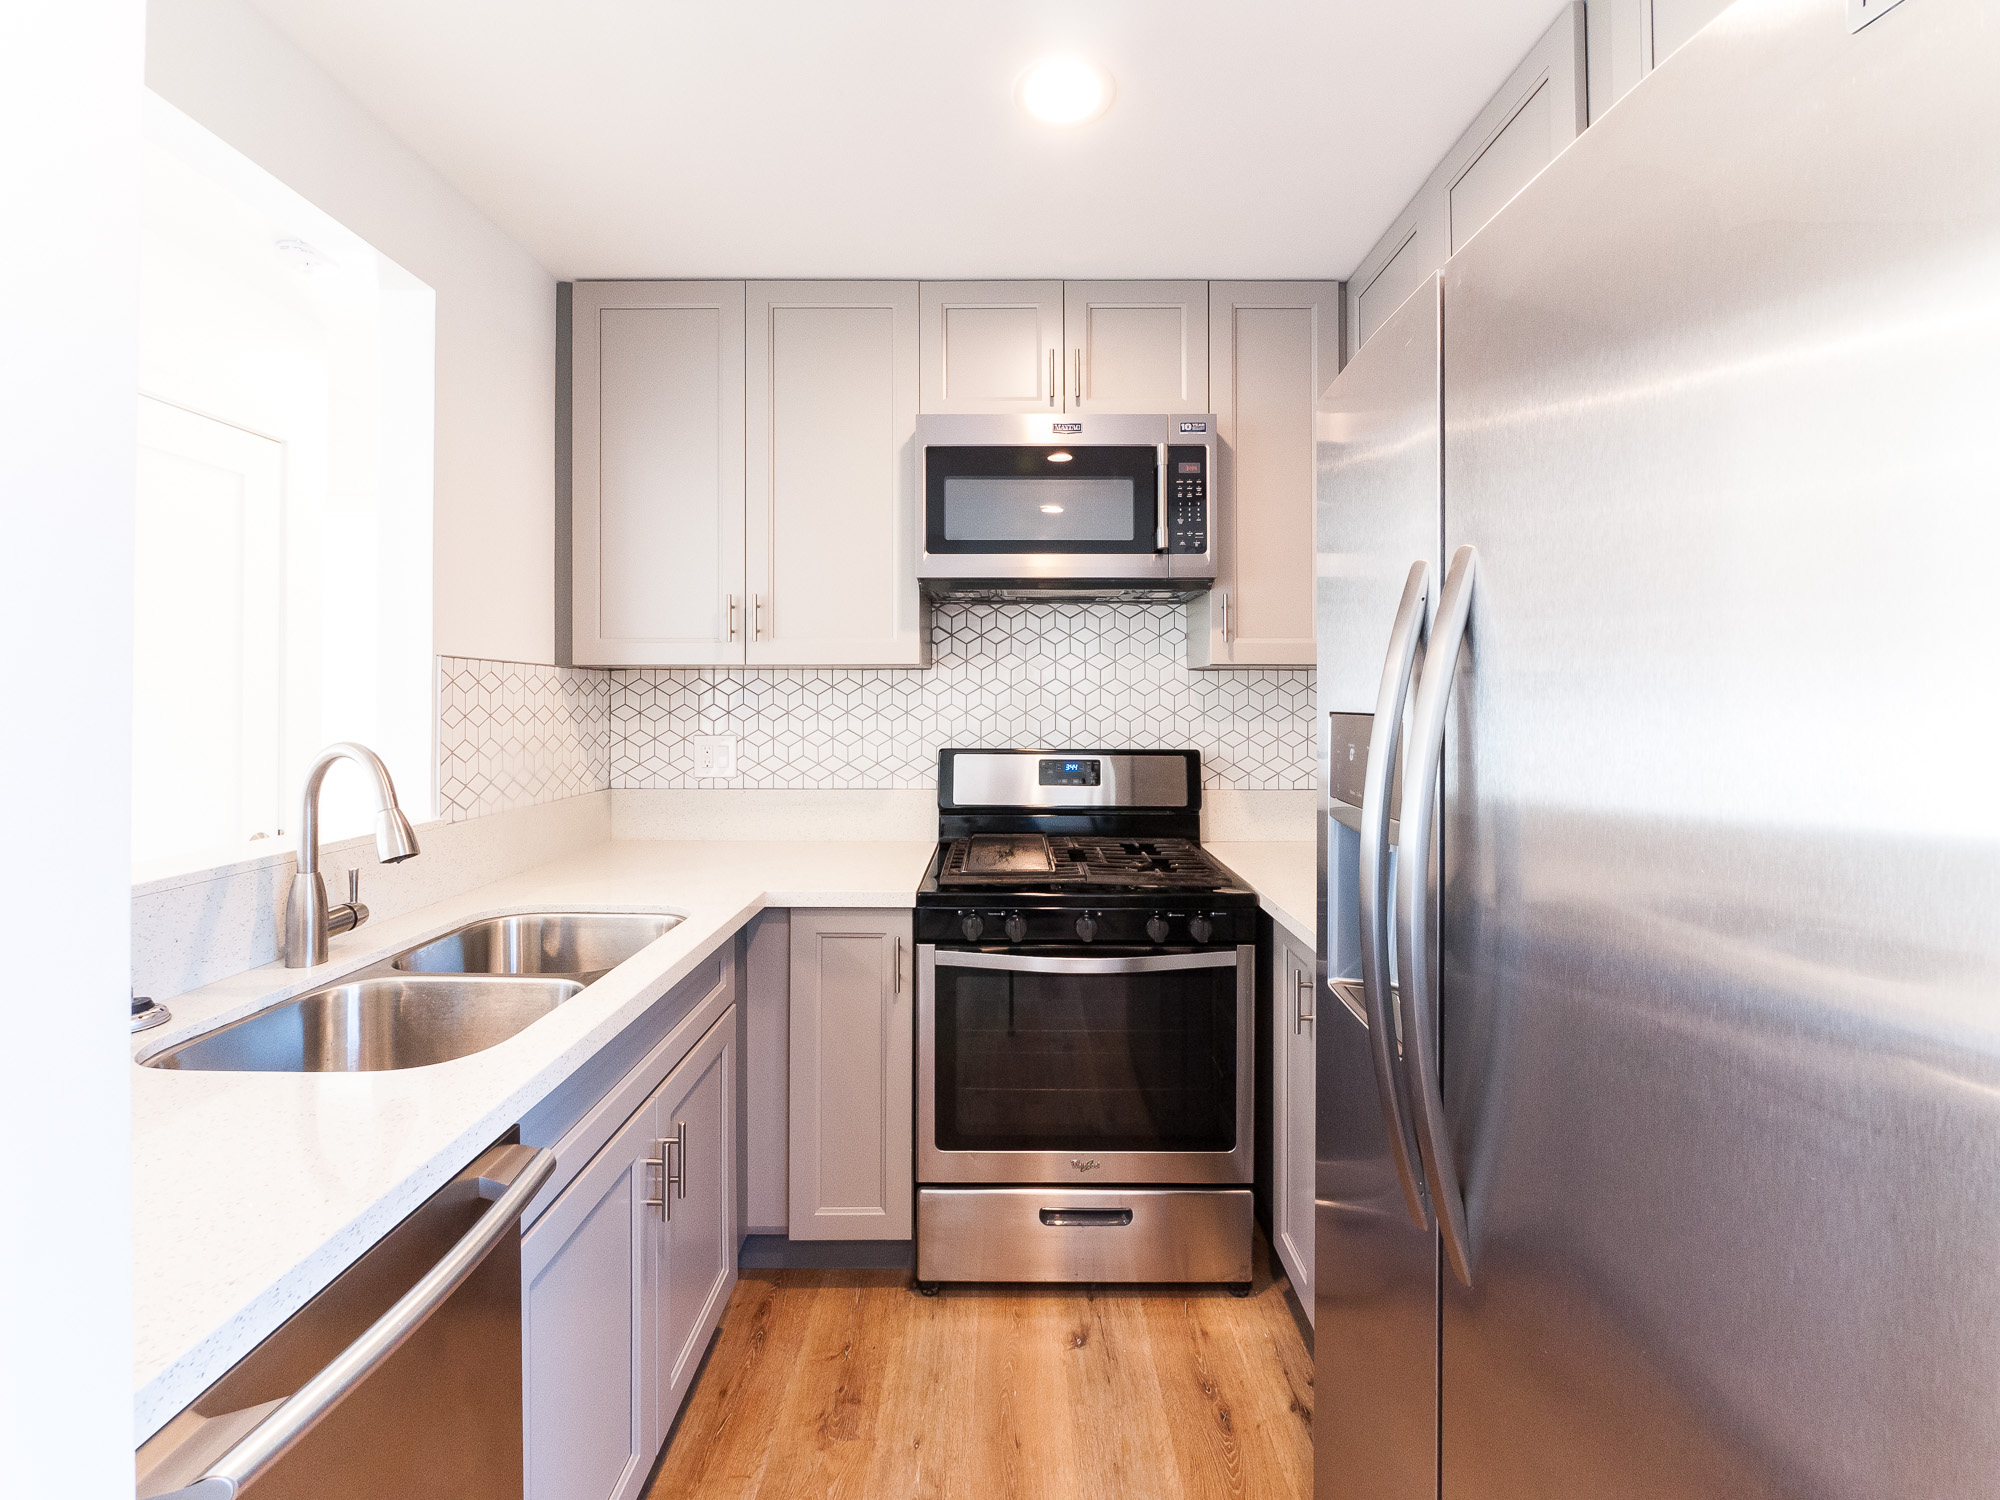 Fully Upgraded 2 Bed/ 1 Bath In Highland Park| Prime Location | 2 Parking Spaces